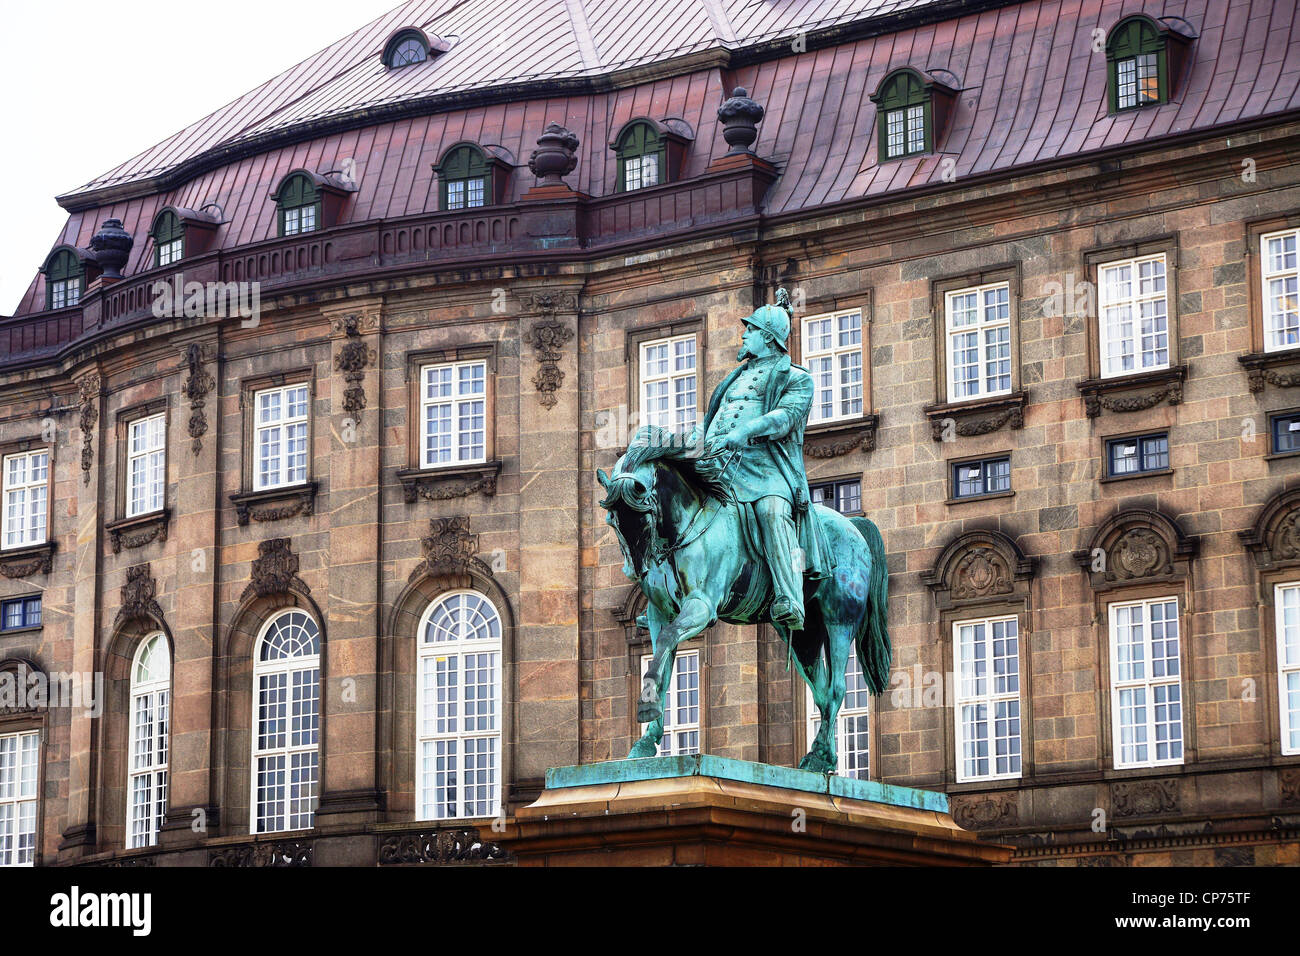 The statue of King Christian IV stands proudly in splendour outside the Christiansborg Palace in Copenhagen Denmark - Stock Image